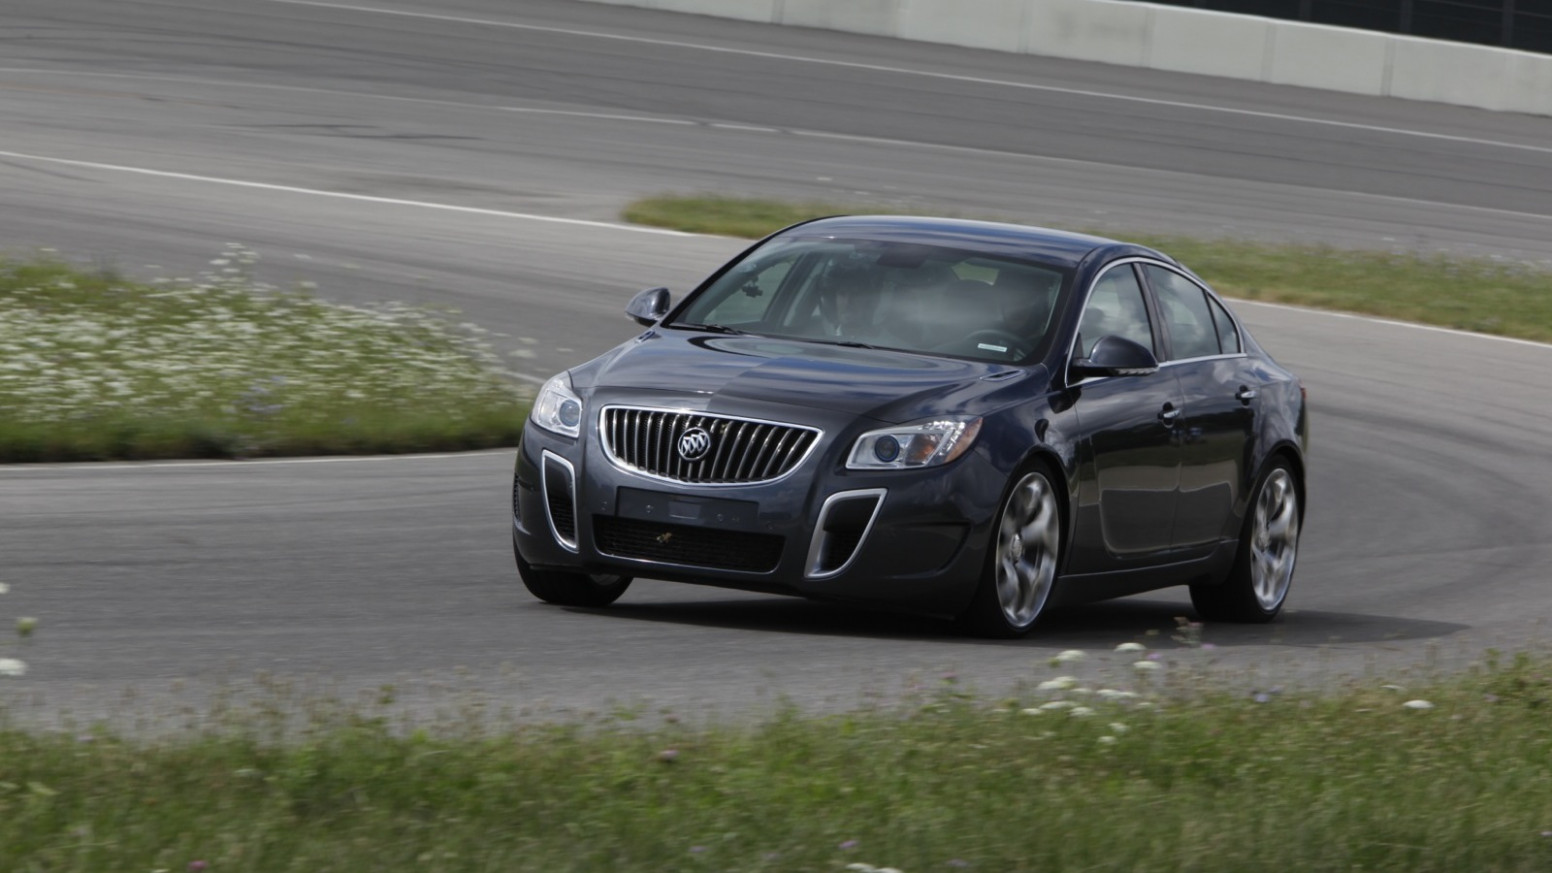 Redesign and Review 2022 Buick Regal Gs Coupe